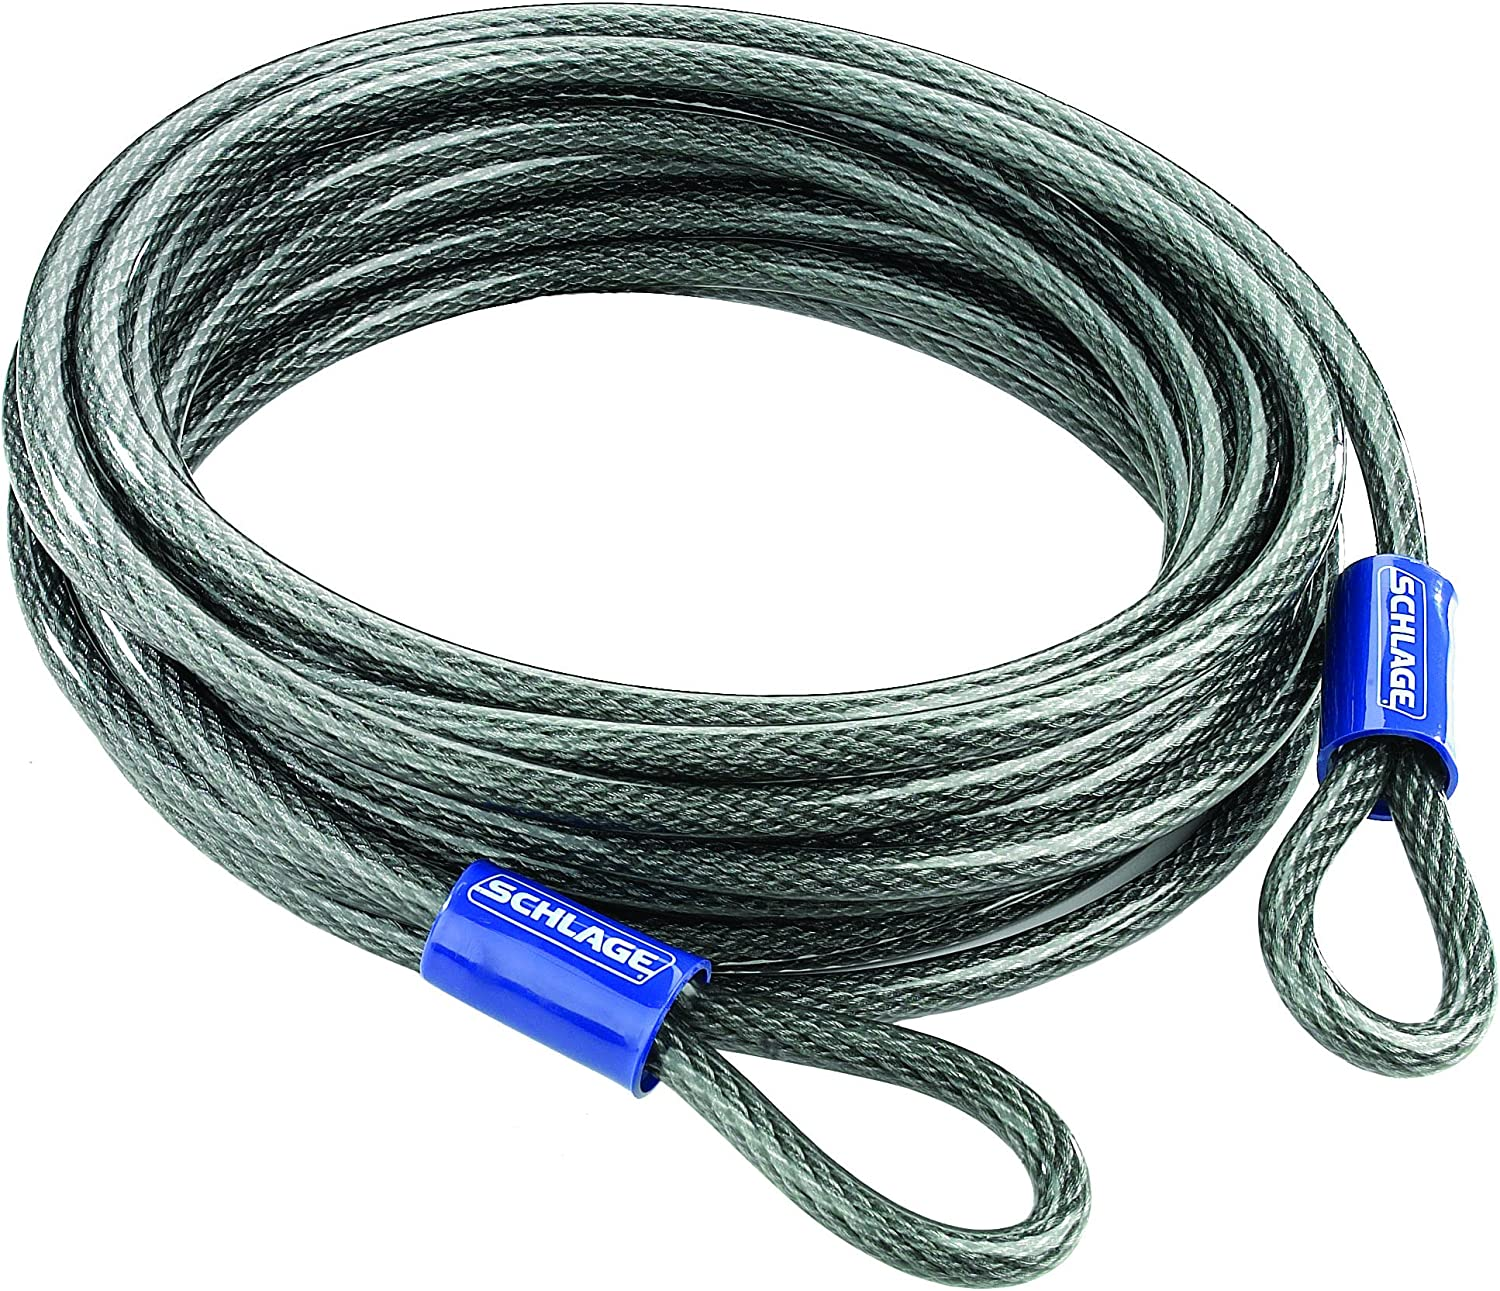 """Schlage Flexible 3/8"""" Steel Looped Security Cable"""